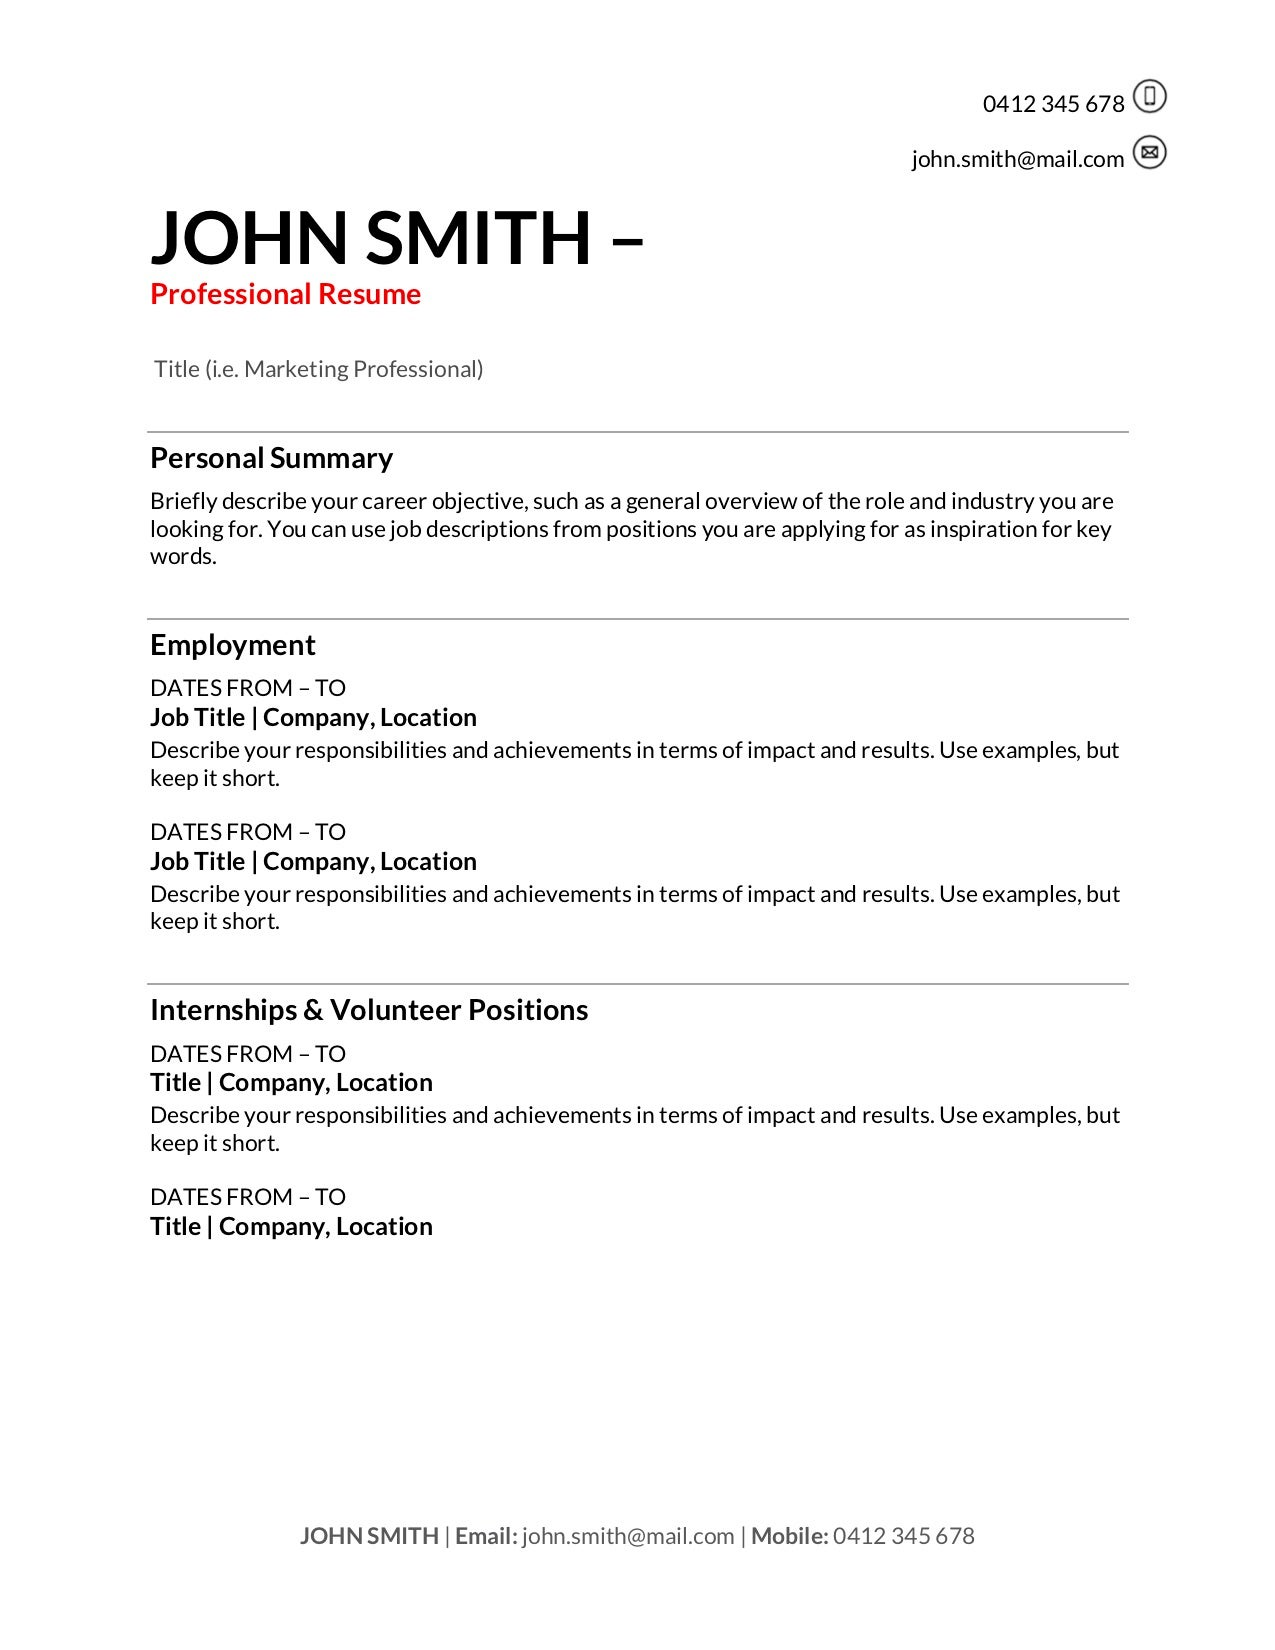 free resume templates to write in training au sample for first job application front end Resume Sample Resume For First Job Application